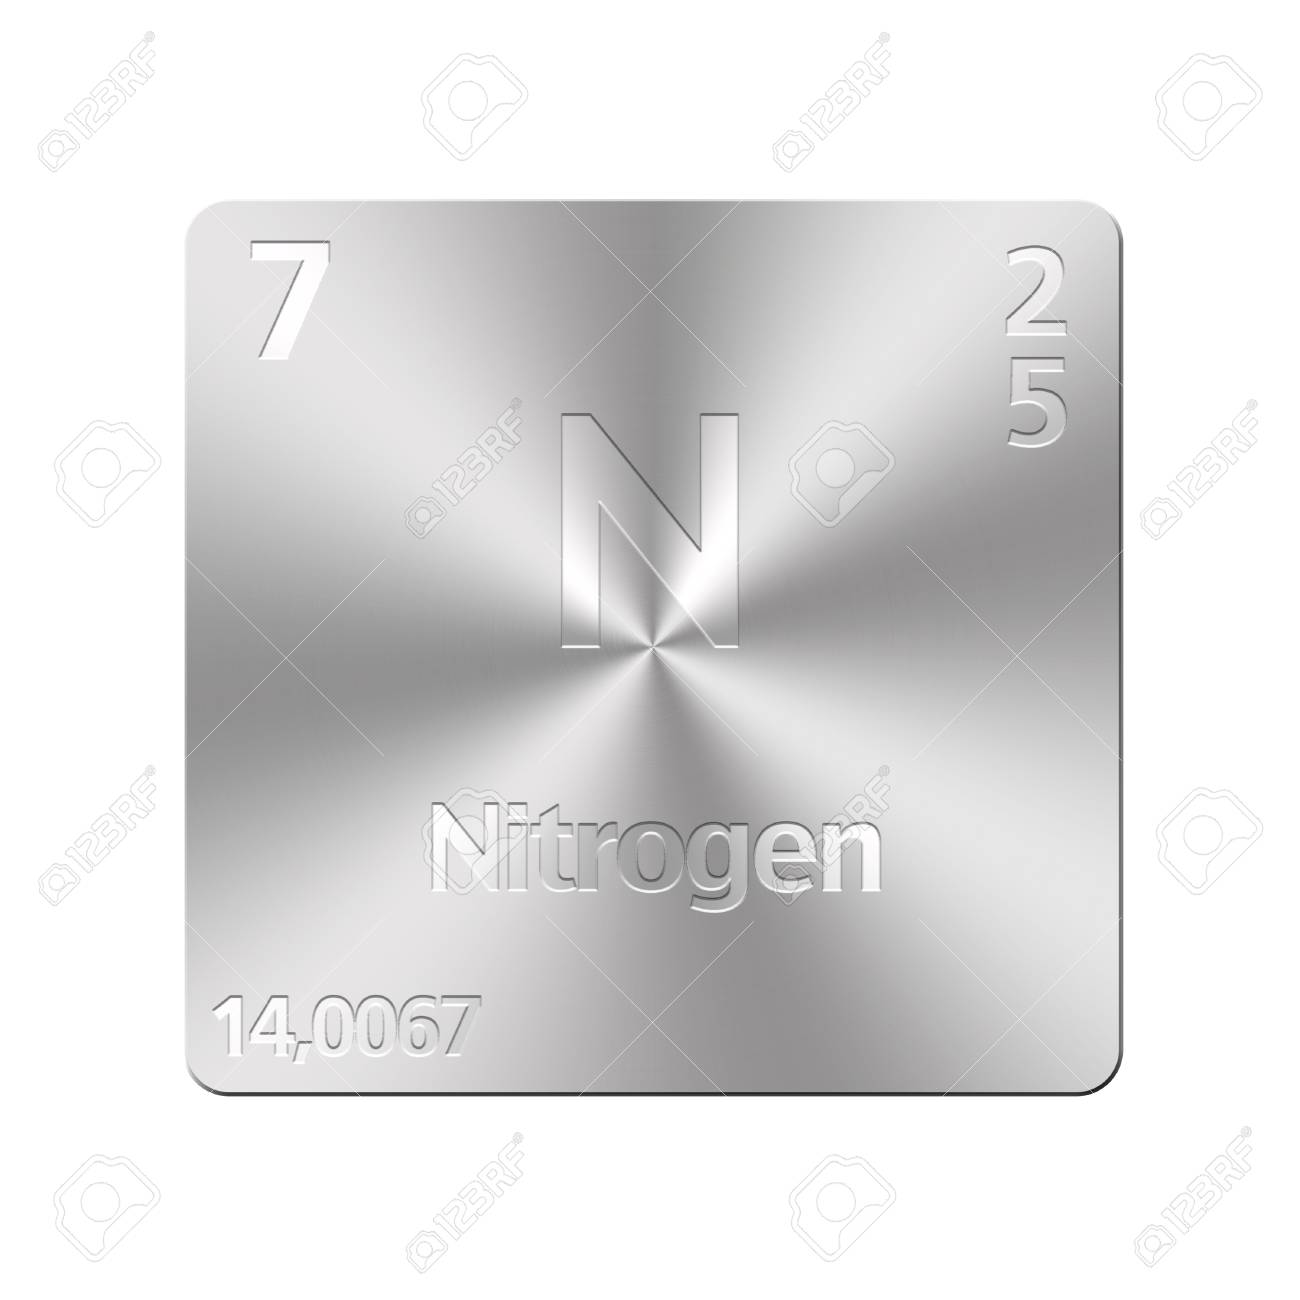 Isolated metal button with periodic table nitrogen stock photo isolated metal button with periodic table nitrogen stock photo 15972835 gamestrikefo Choice Image